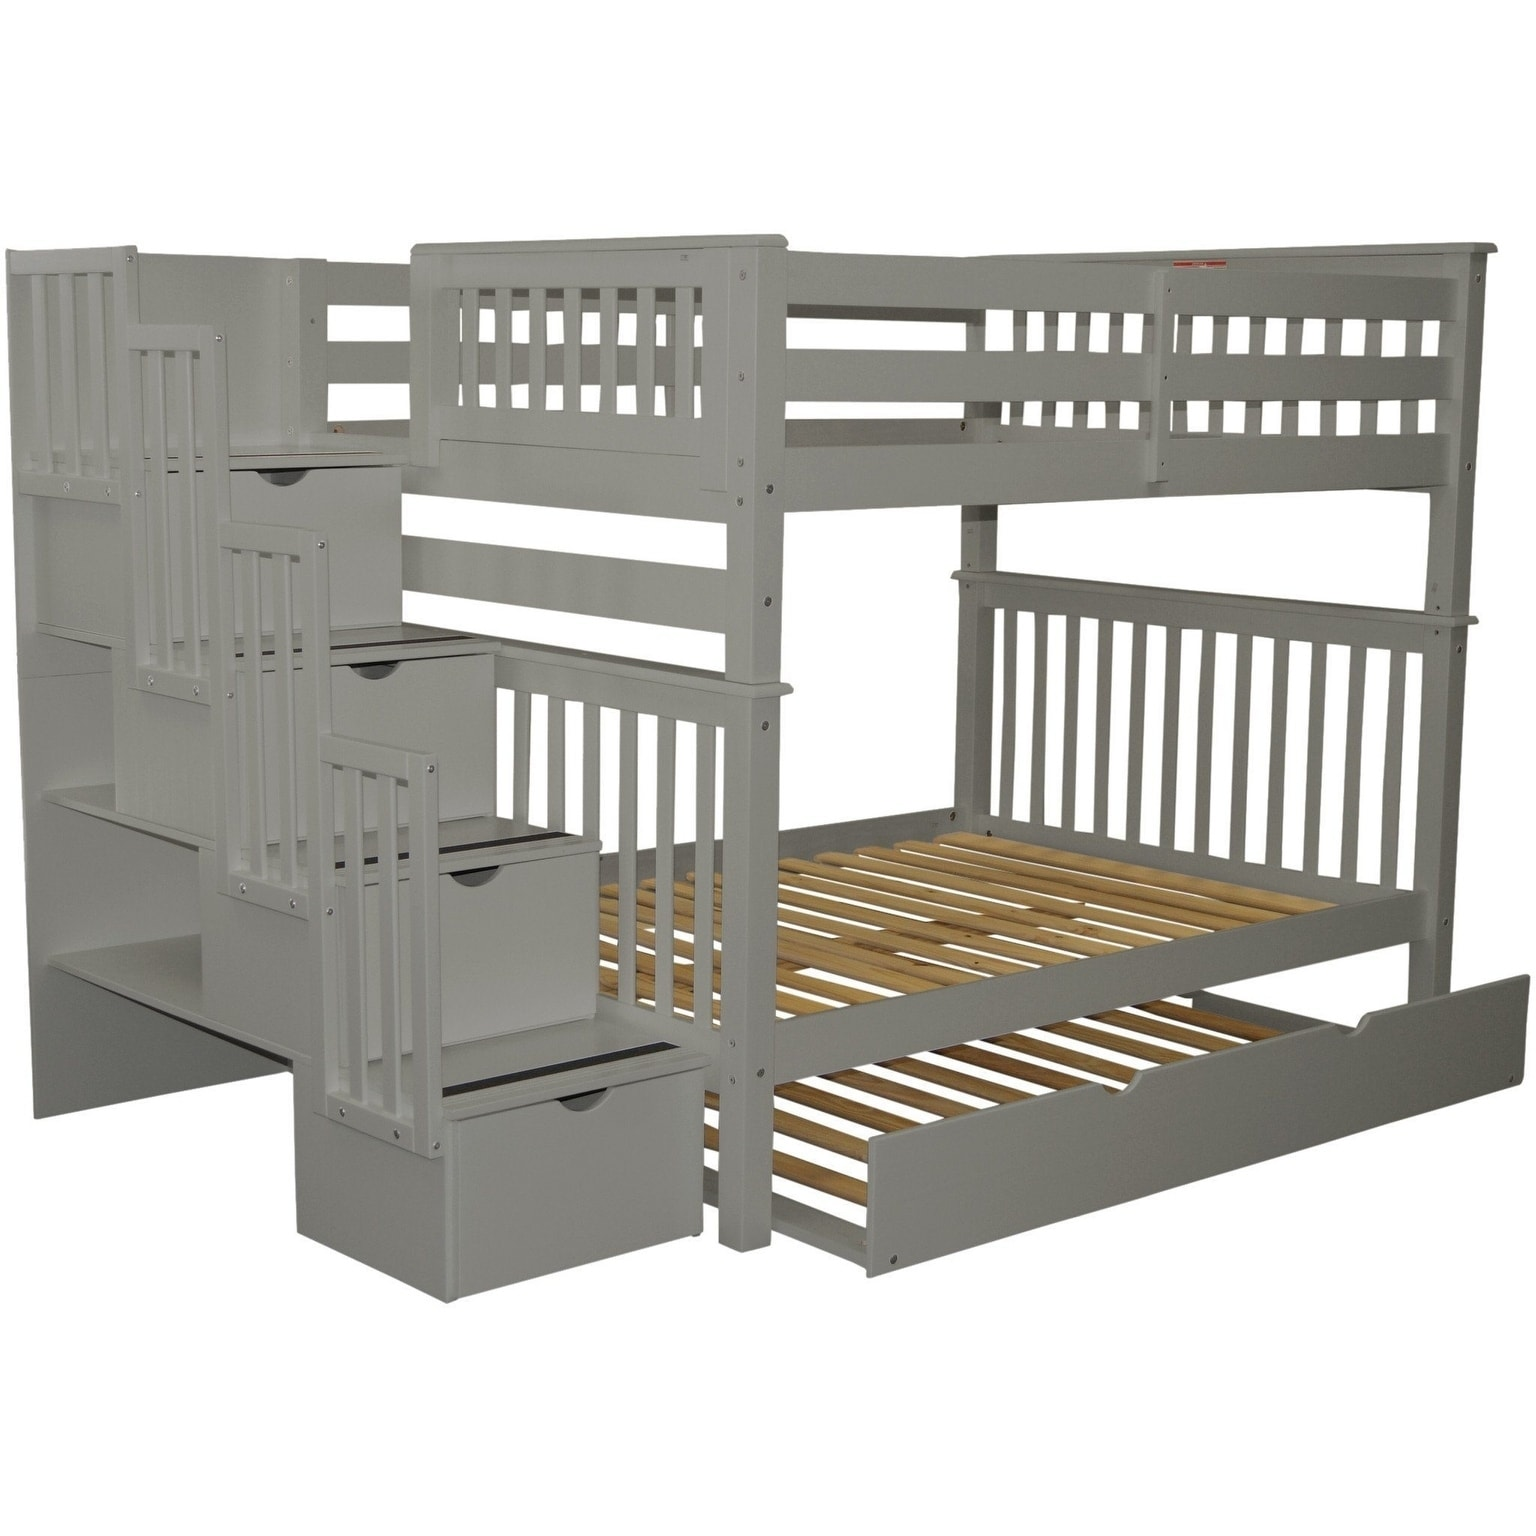 Bedz King Grey Pine Full Over Stairway Bunk Beds With 4 Drawers In The Steps And A Twin Trundle Free Shipping Today 22669713